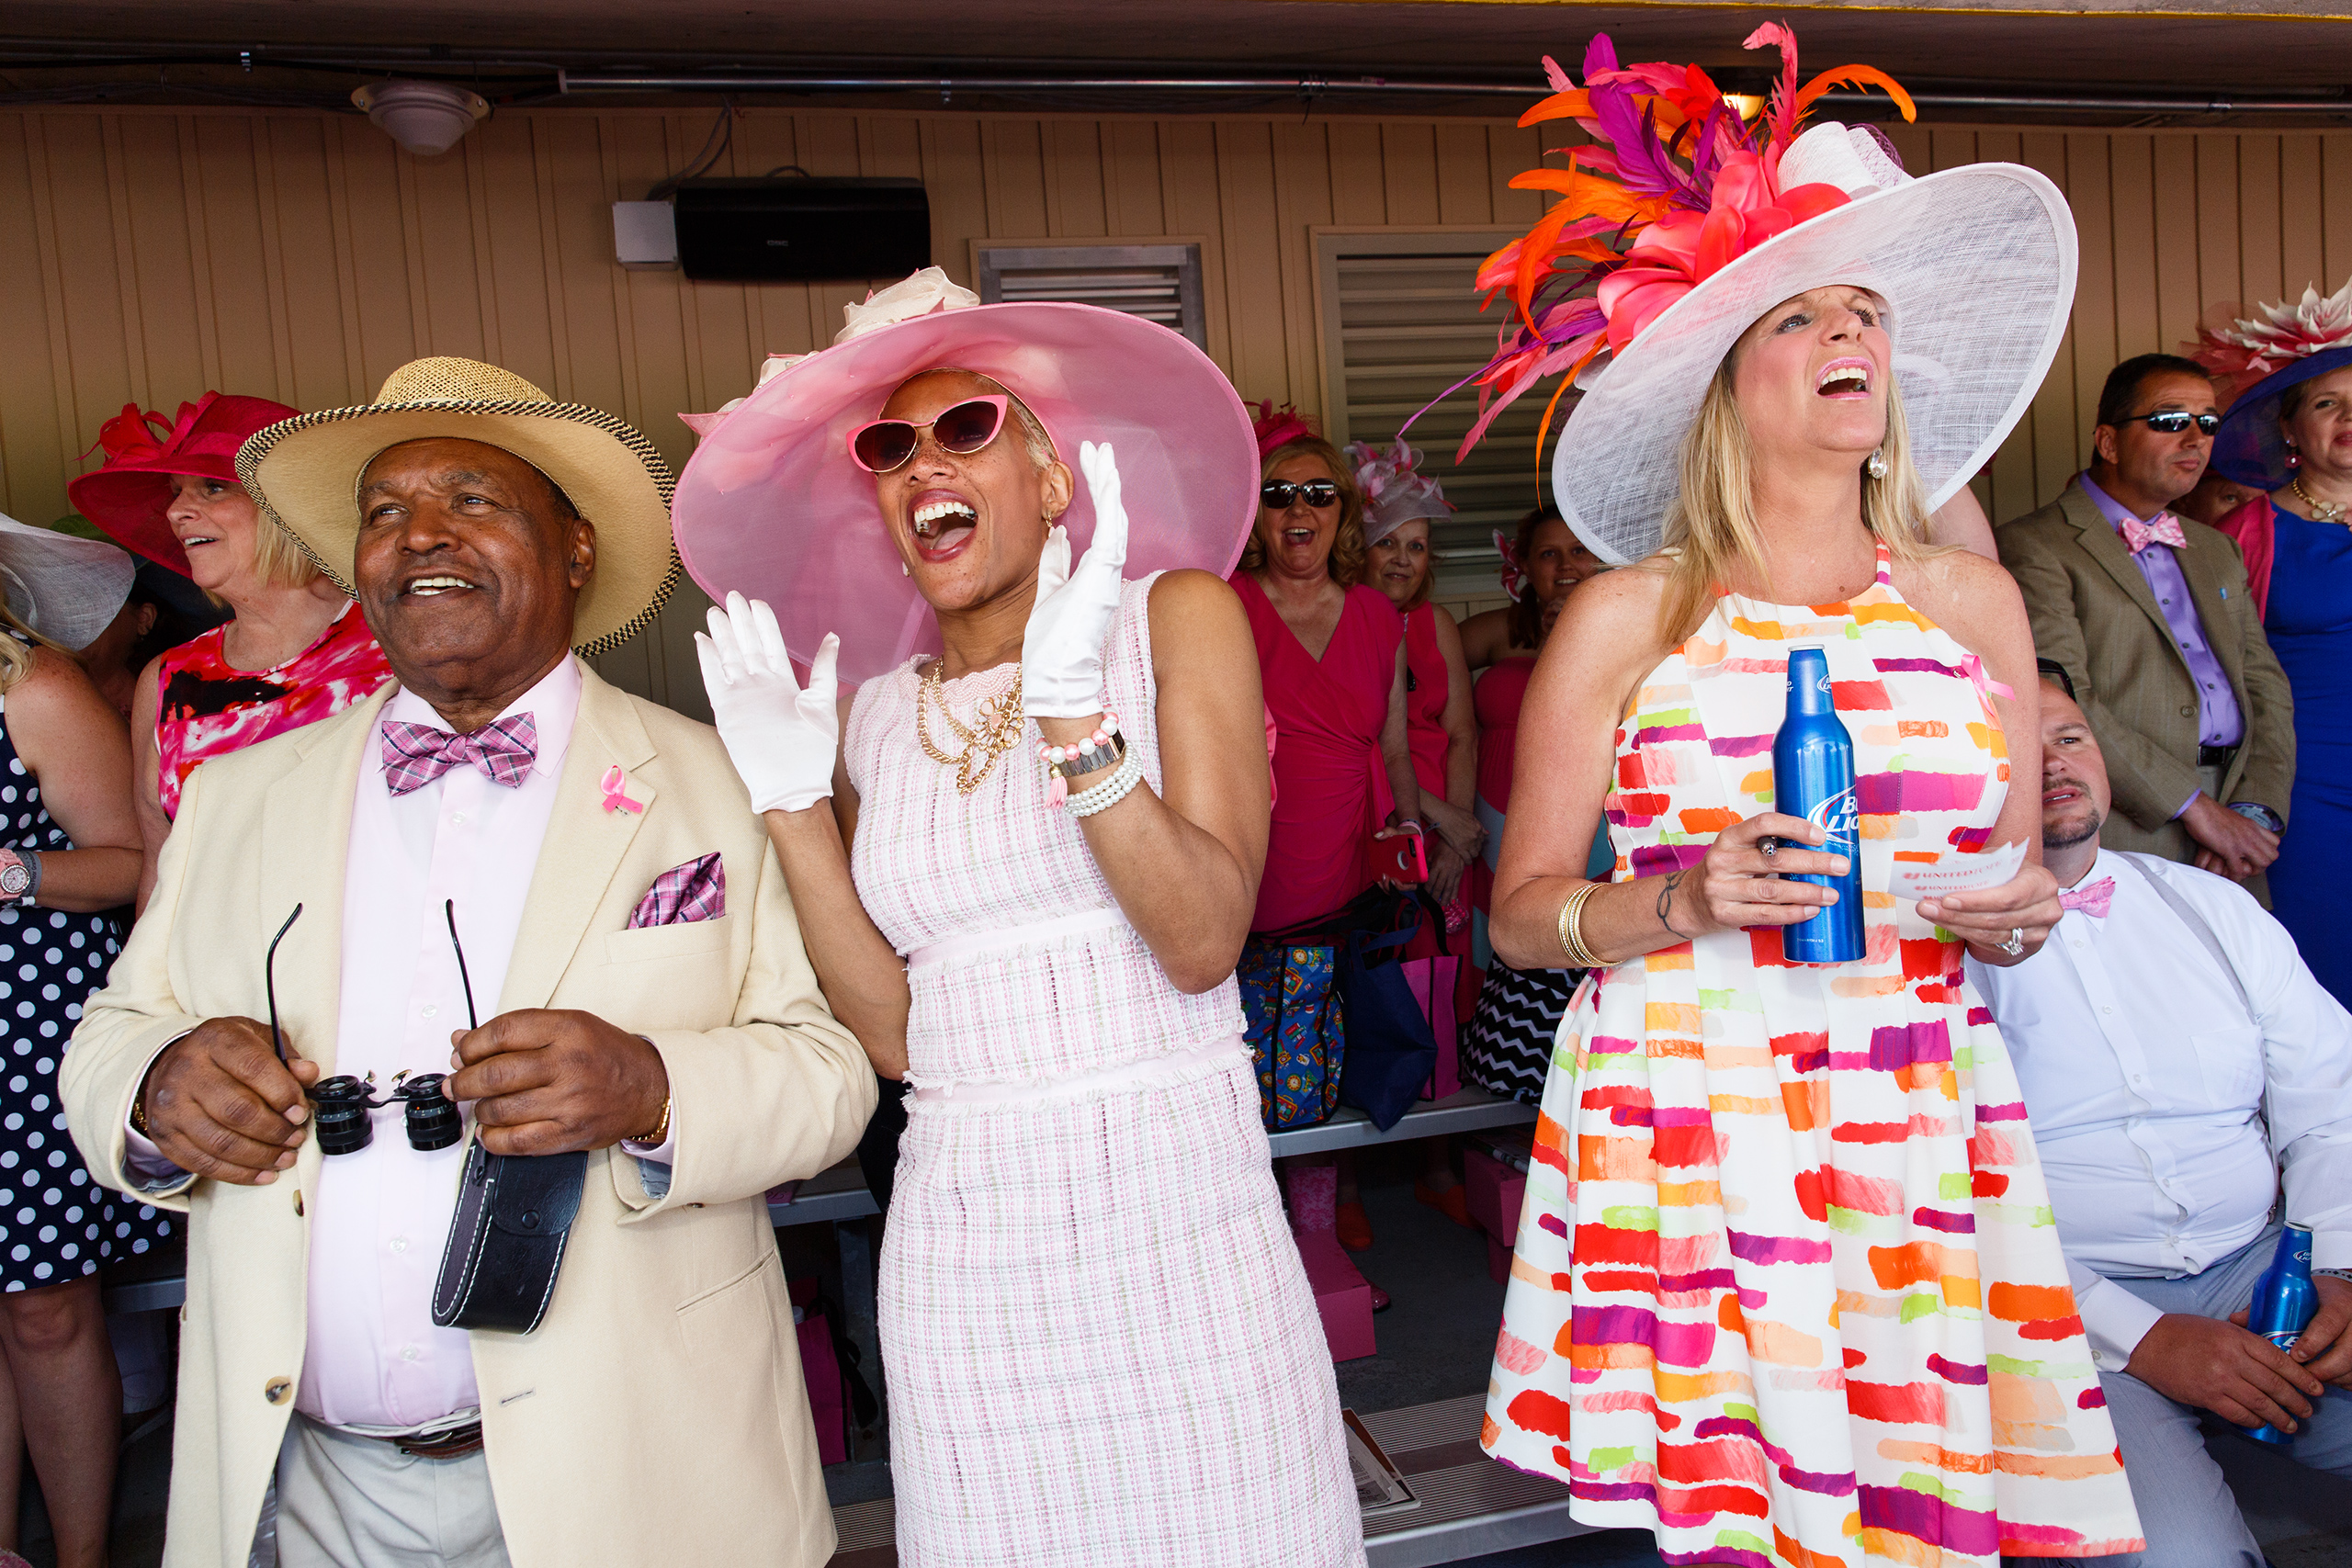 USA. Kentucky Derby. 2015.